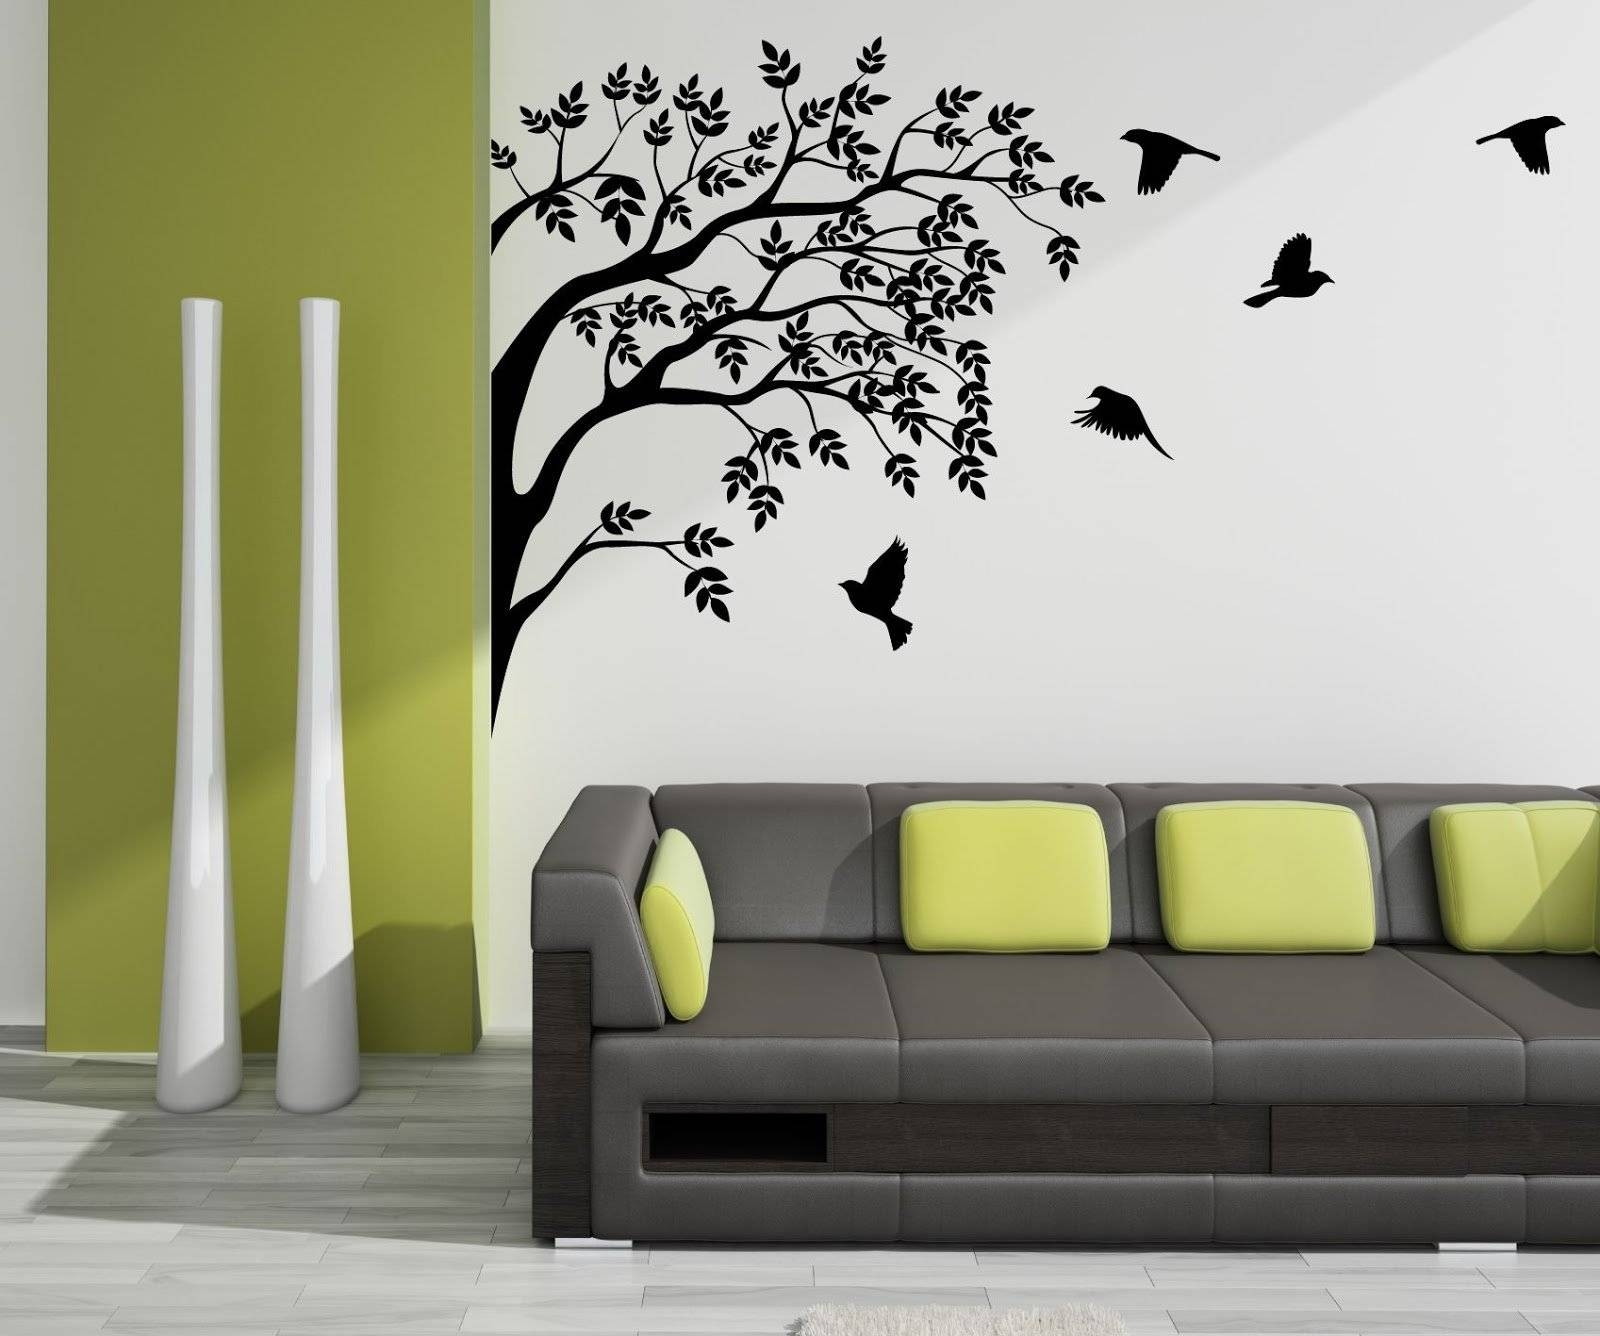 Wall Graphic Designs | Jumply (View 19 of 20)